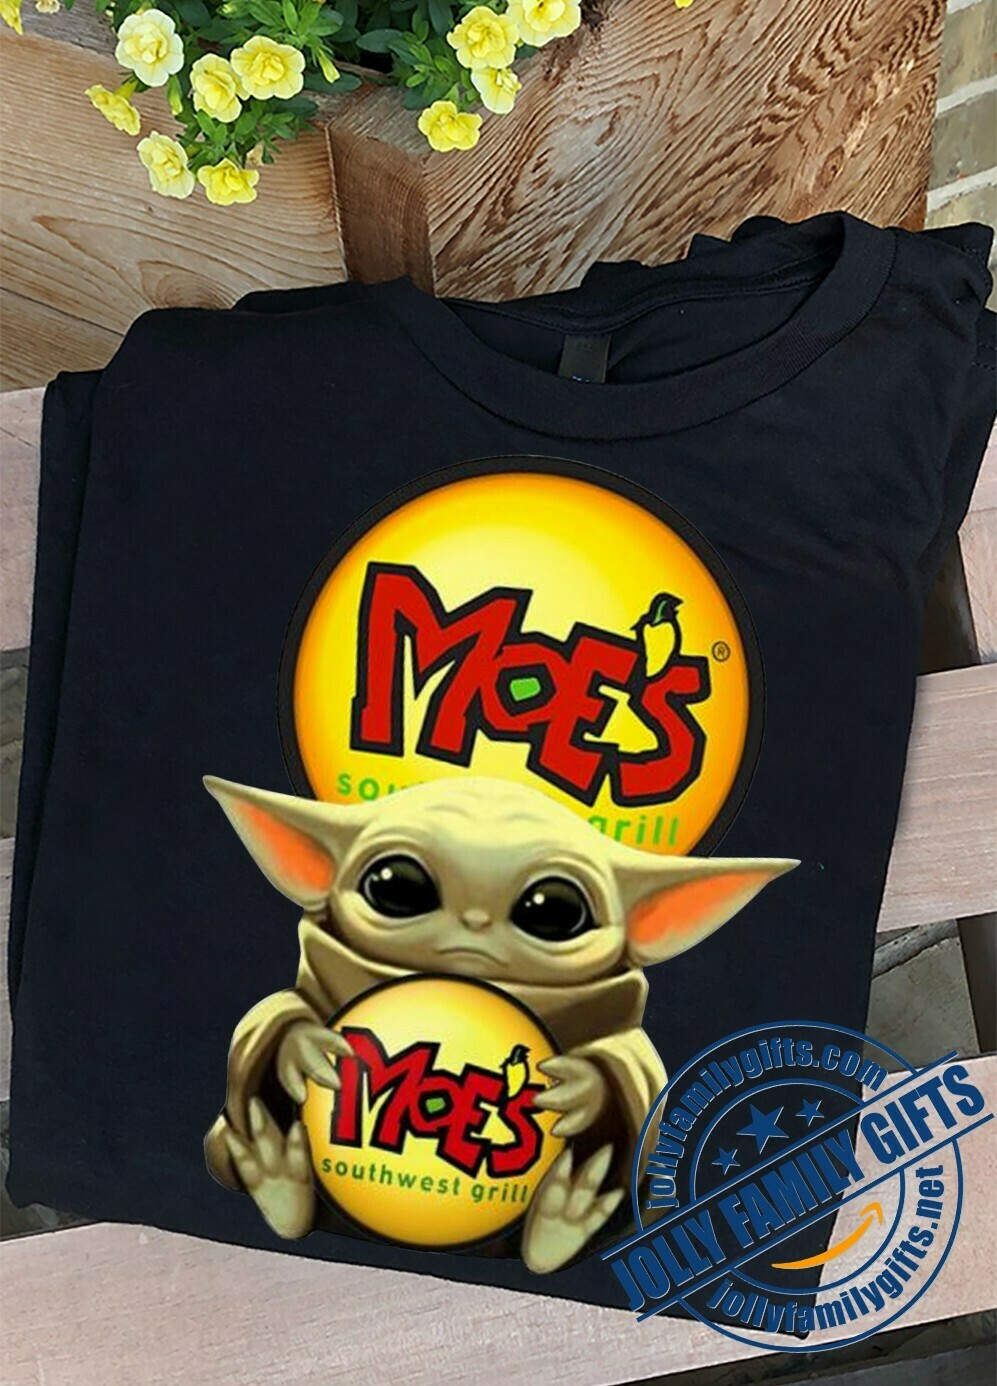 Baby Yoda The Mandalorian with death Star Wars Movie Baby Yoda hug Moe's south west grill Gift  T-Shirt Hoodie Sweatshirt Sweater Tee Kids Youth Gifts Jolly Family Gifts